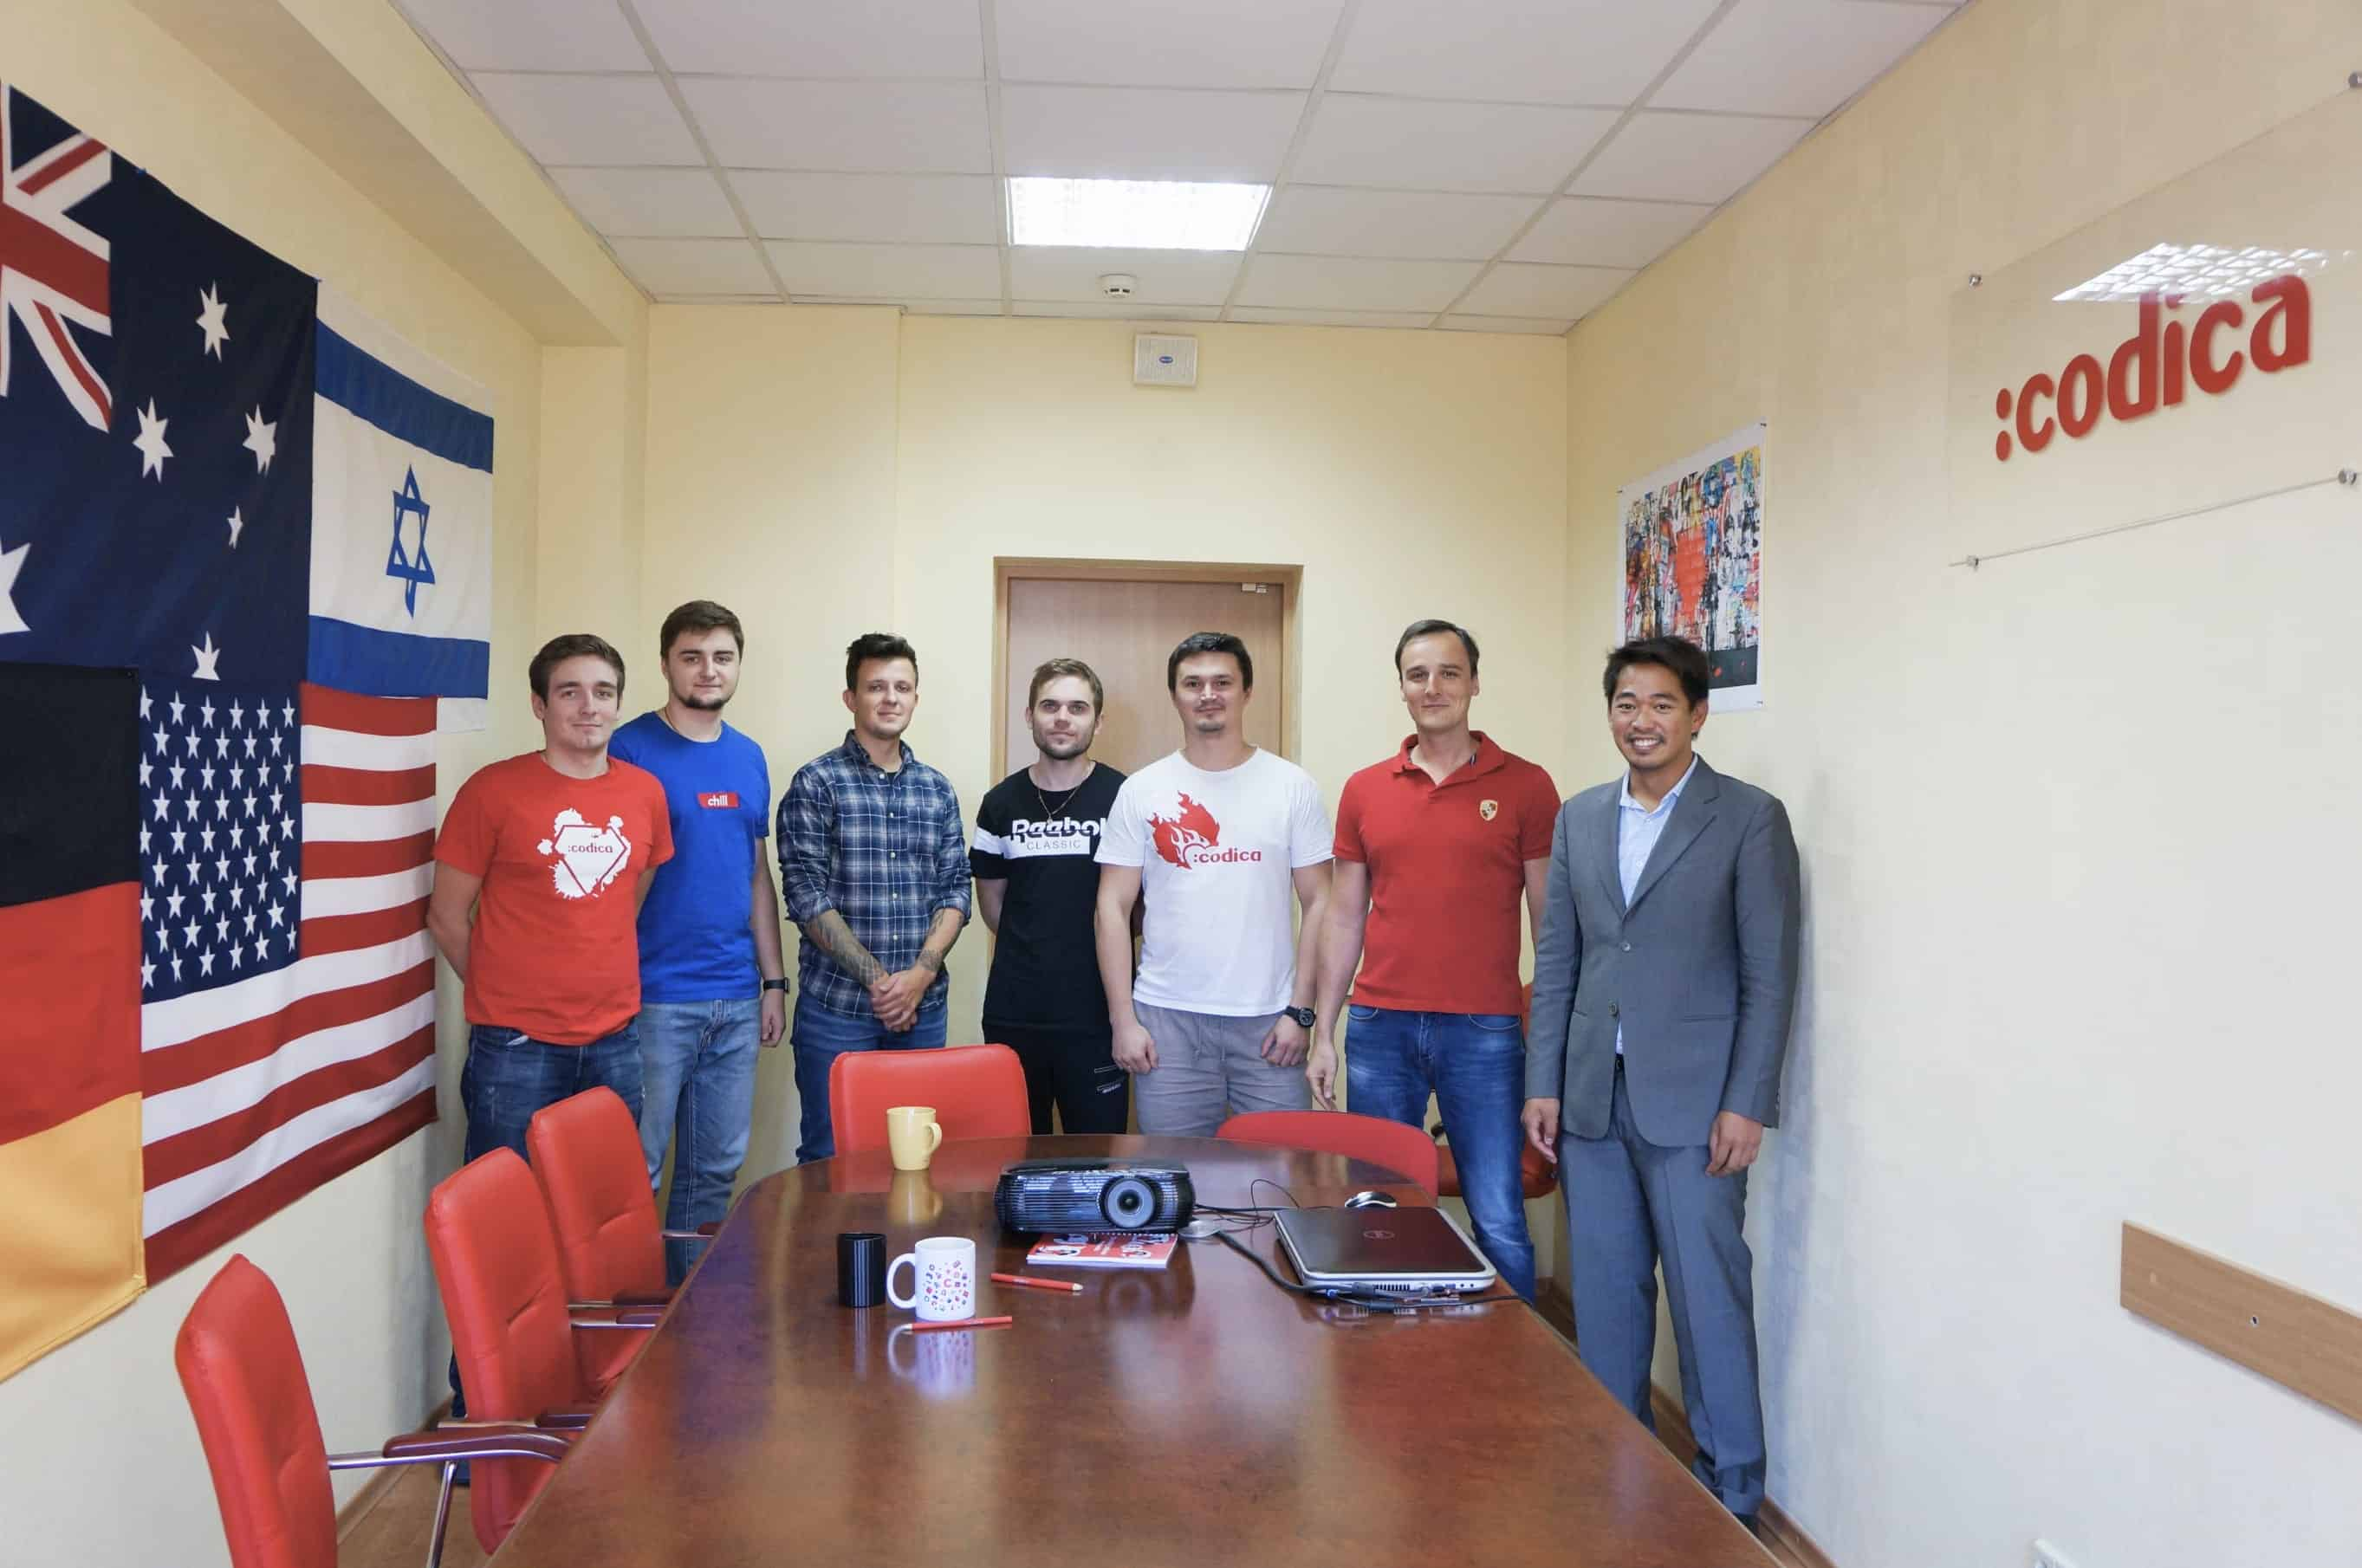 Codica team welcomes our customer at the office